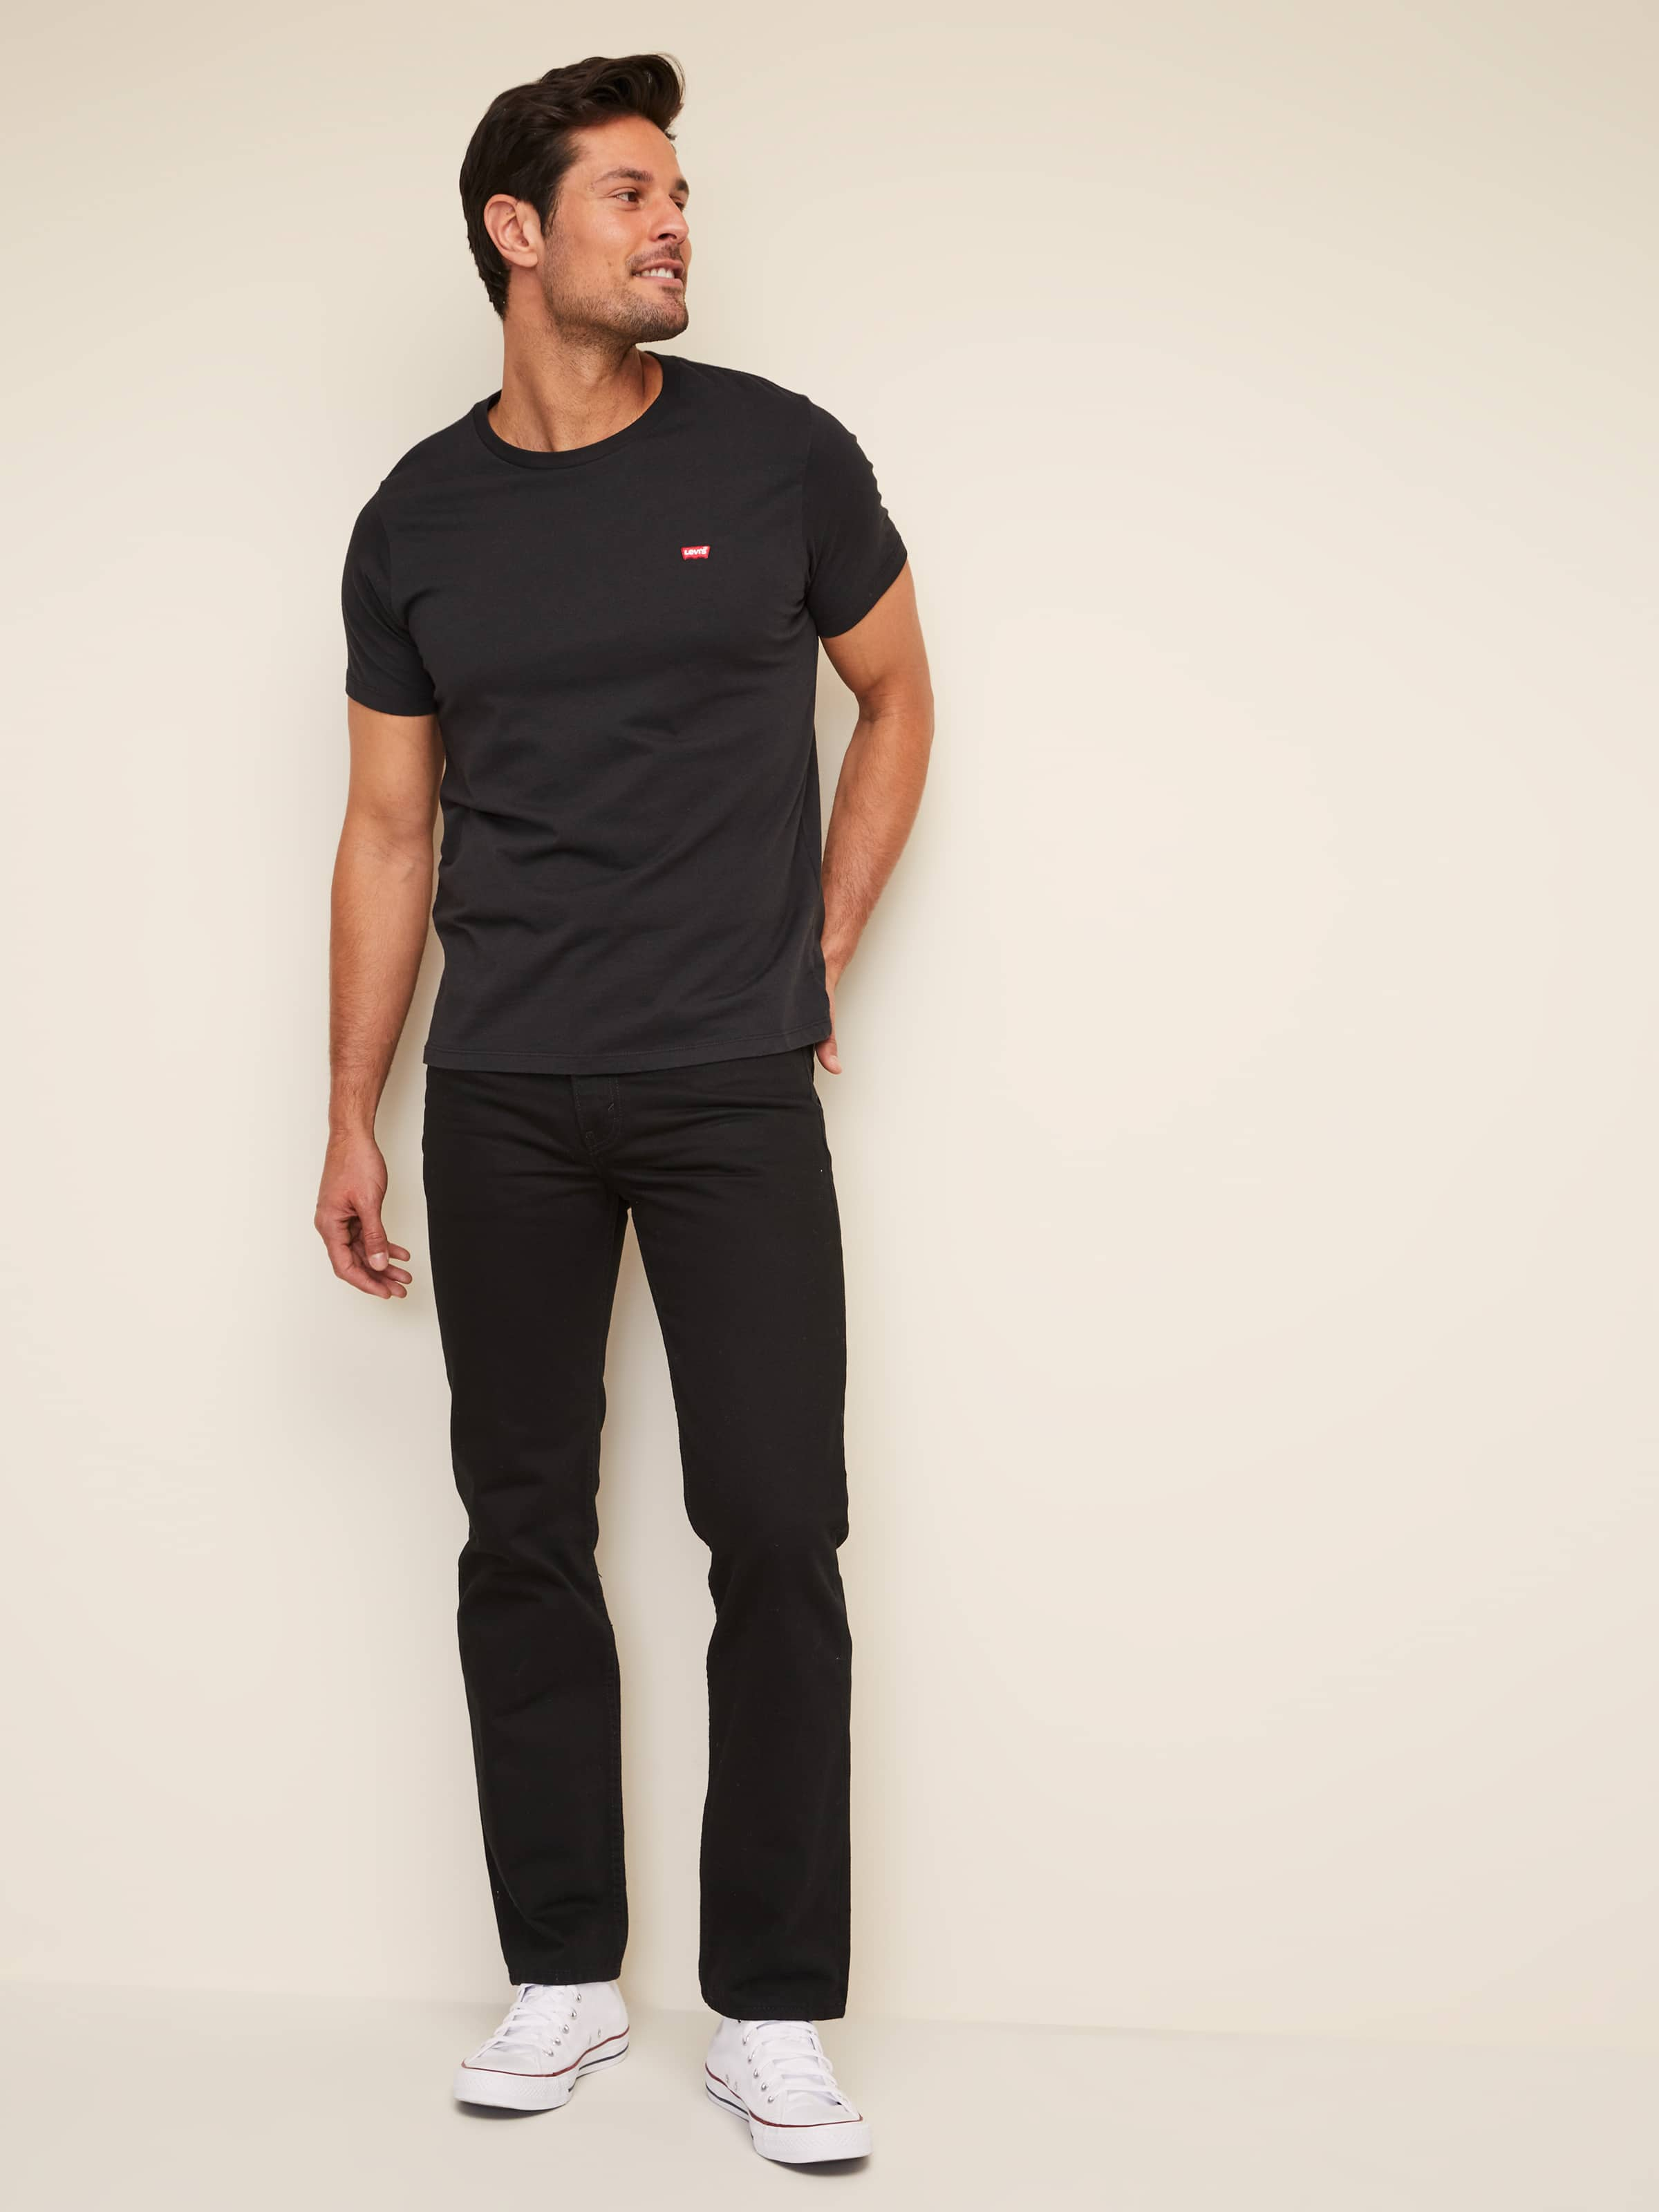 Just Jeans LEVI'S 516 STRAIGHT IN BLACK RINSE